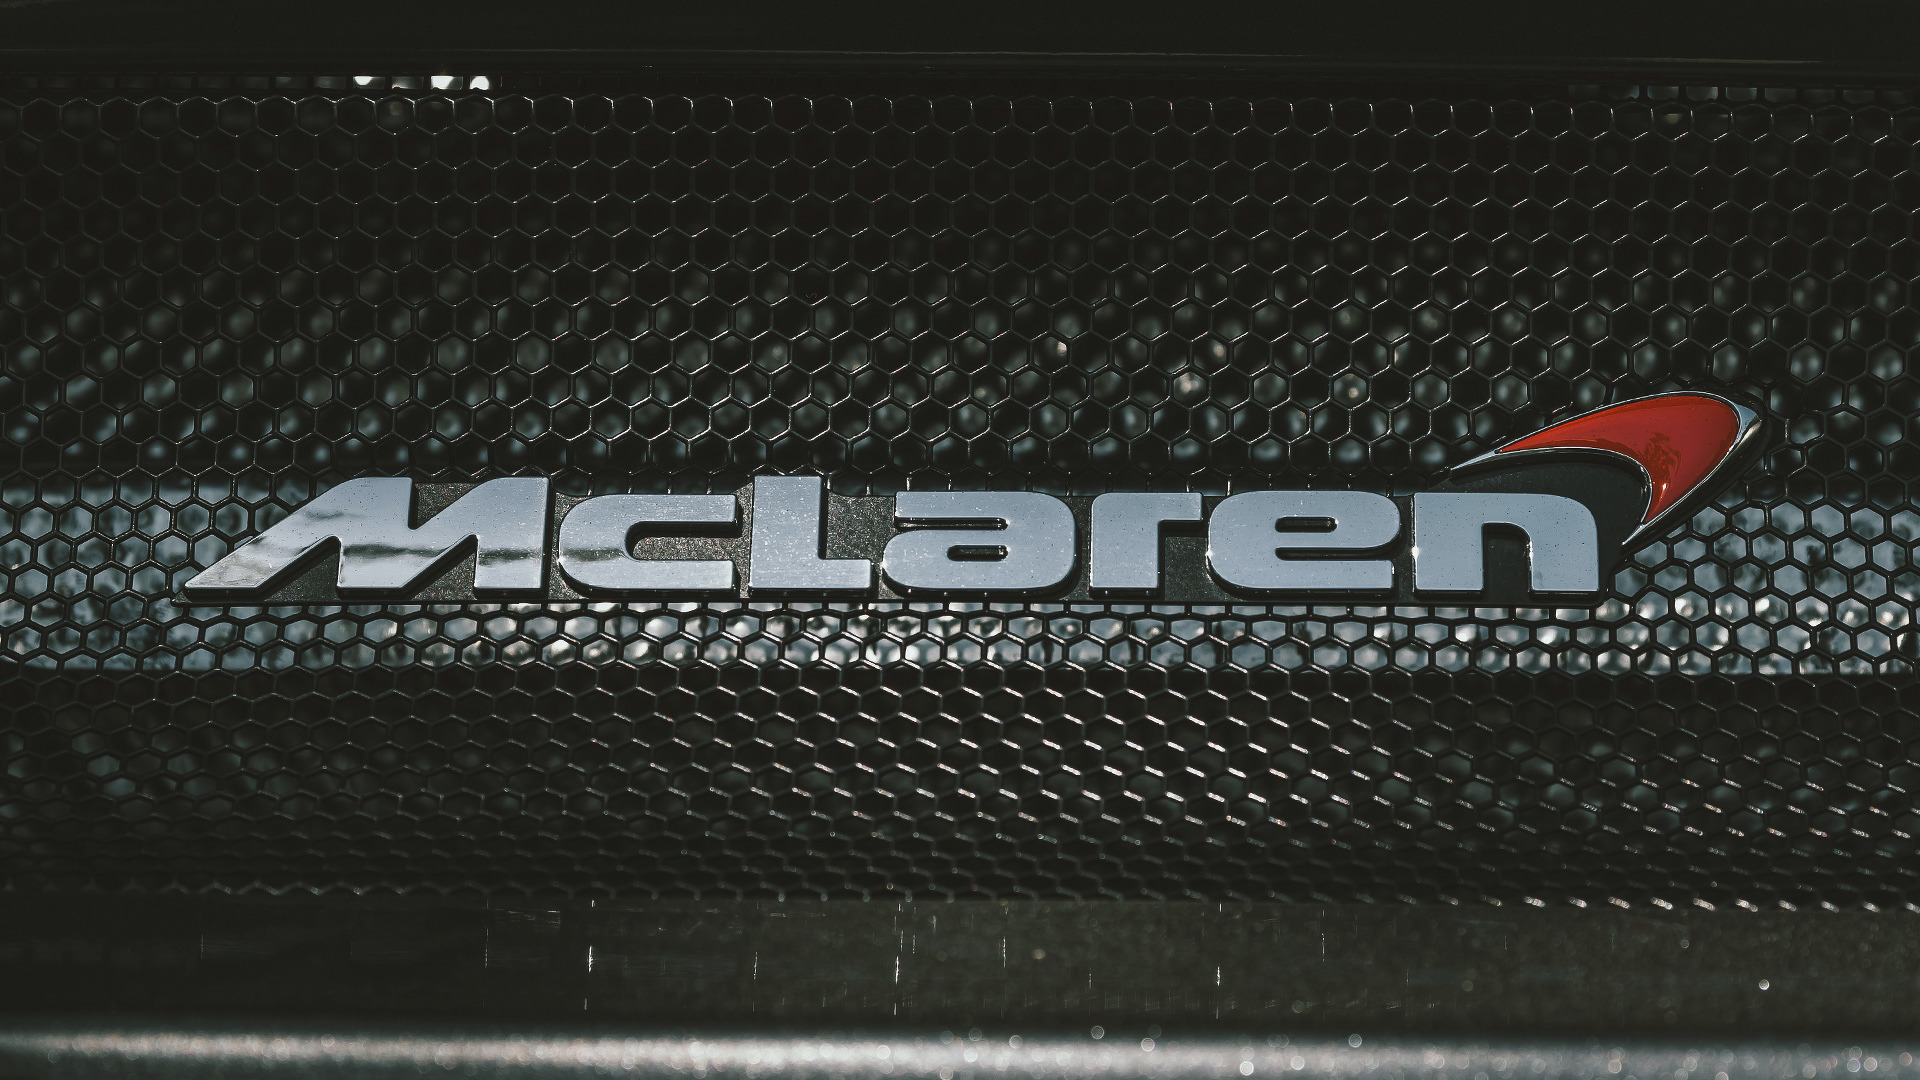 Mclaren News And Reviews Motor1 Com